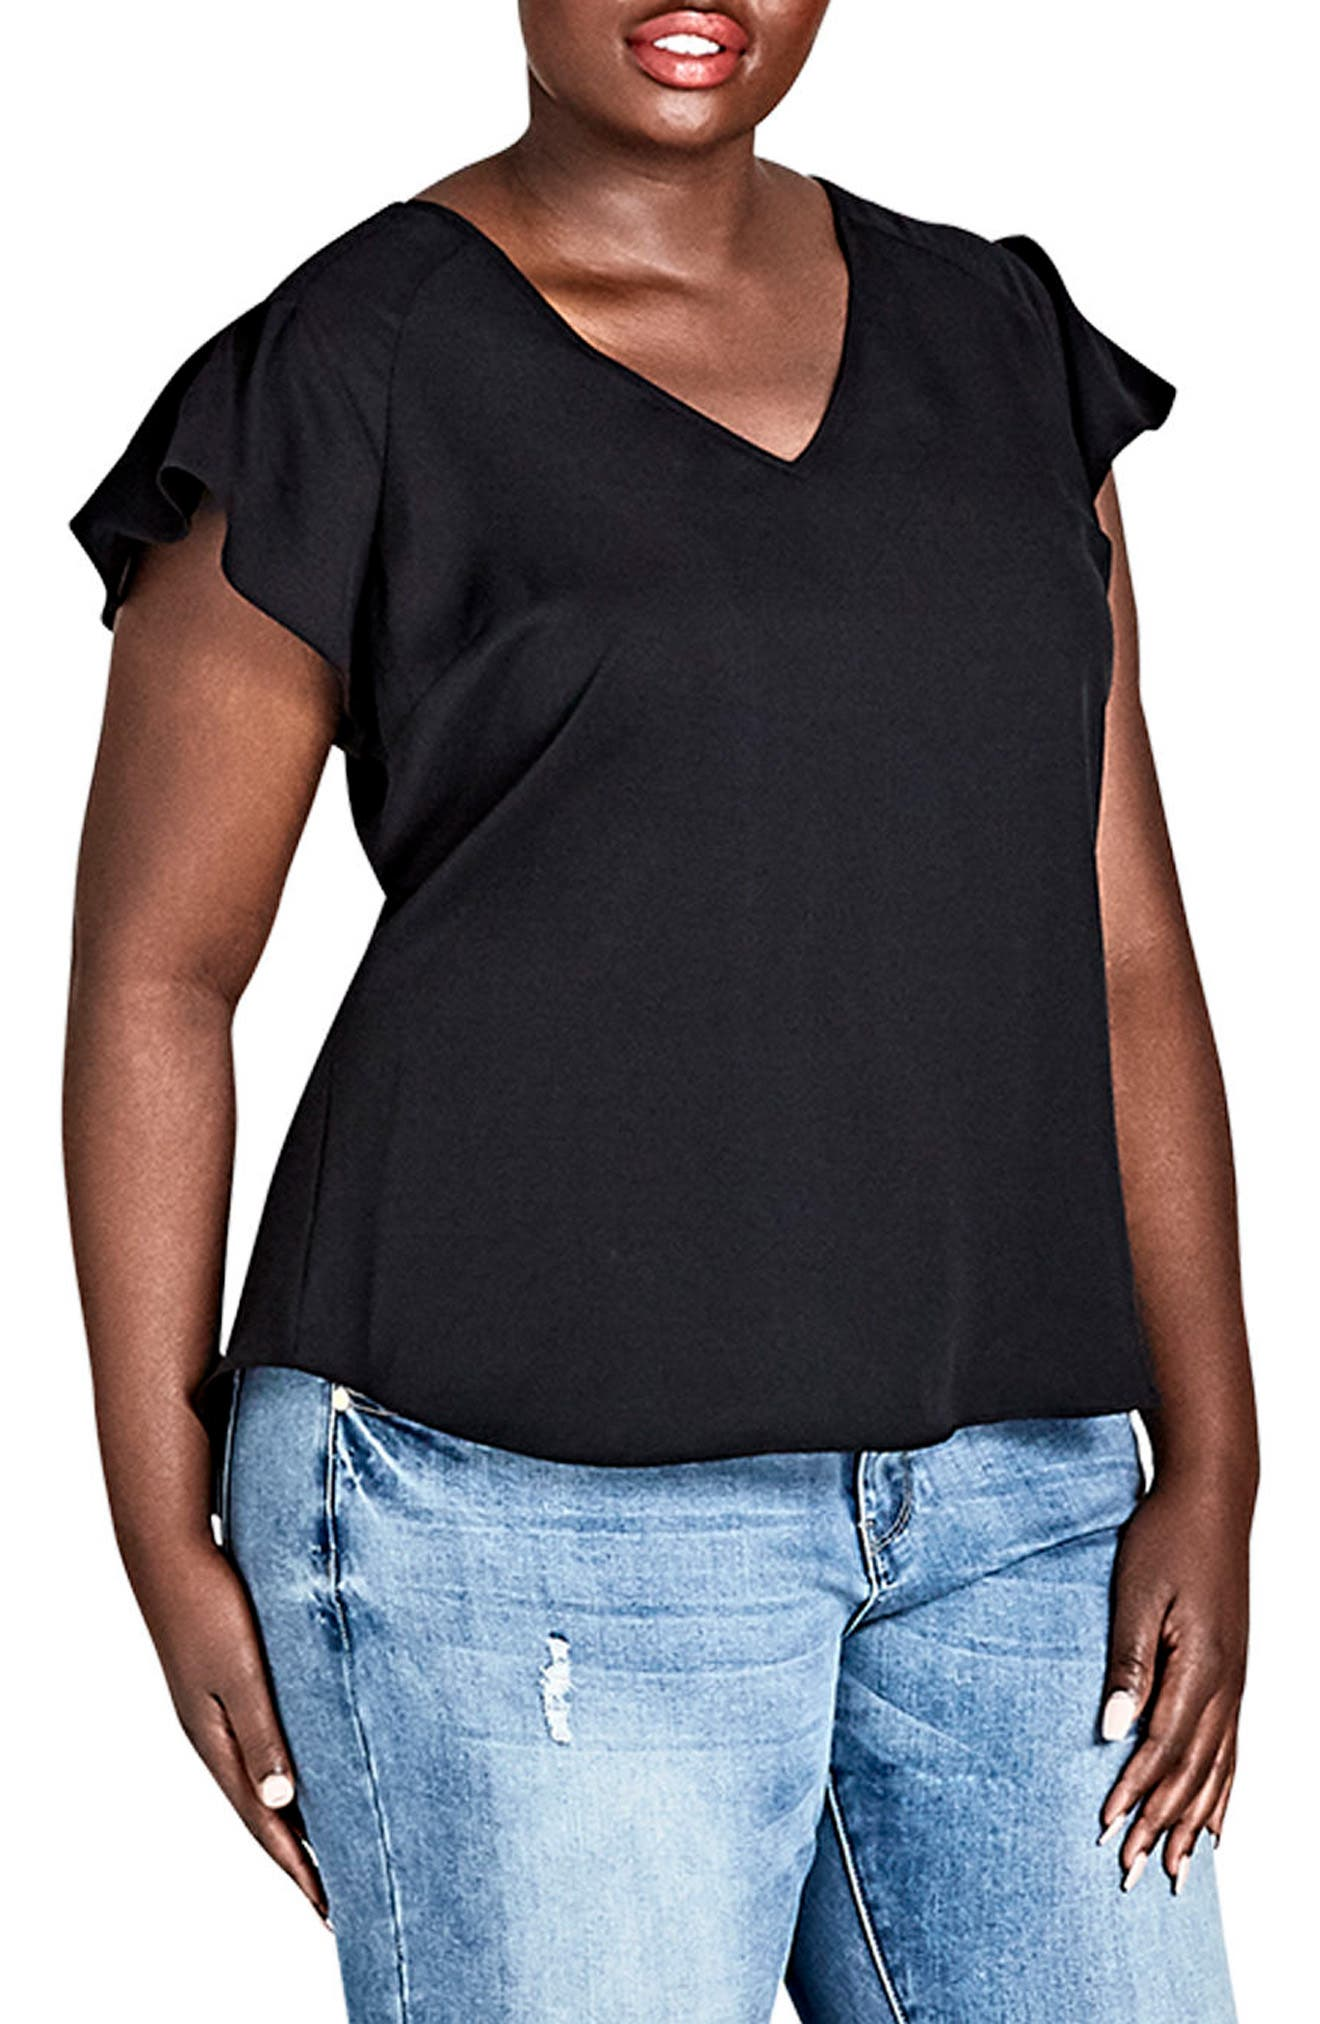 Alternate Image 1 Selected - City Chic Flirty Shoulder Top (Plus Size)